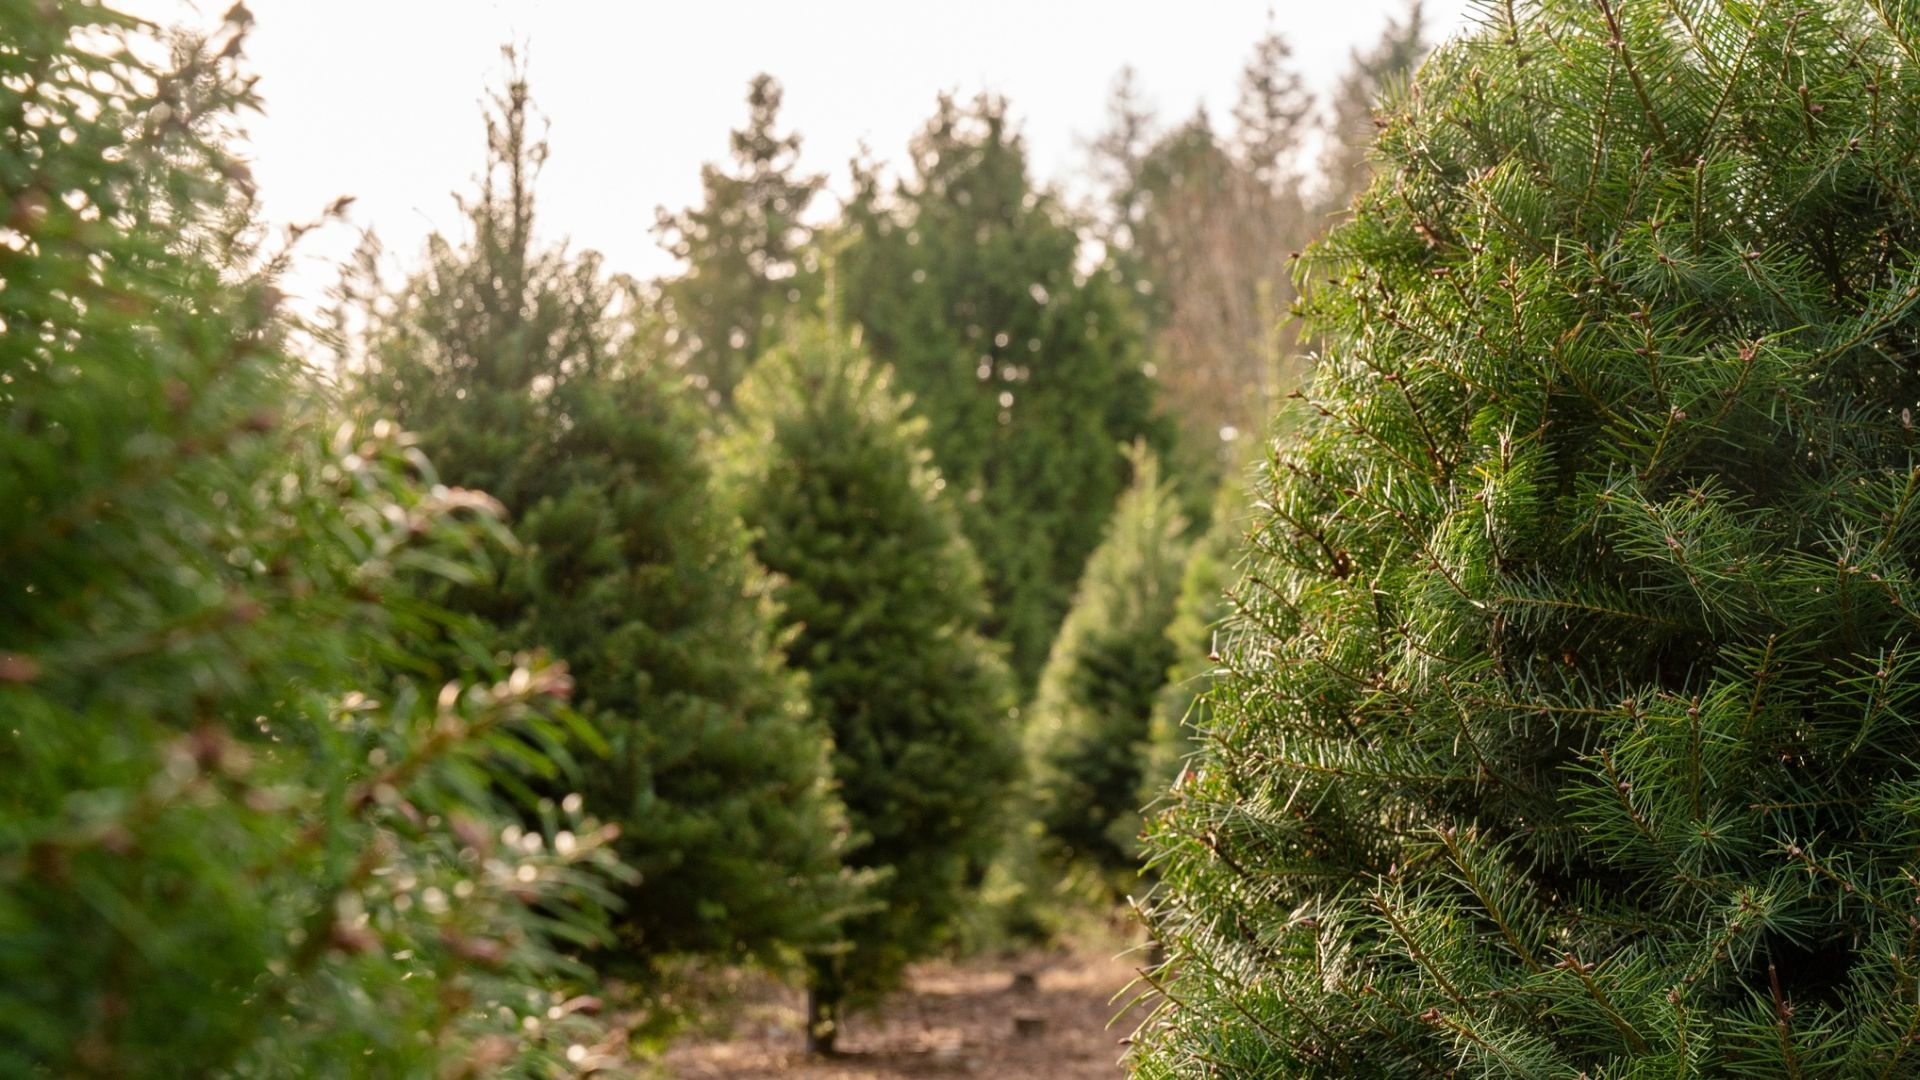 8 Sustainable Ways To Recycle Your Christmas Tree